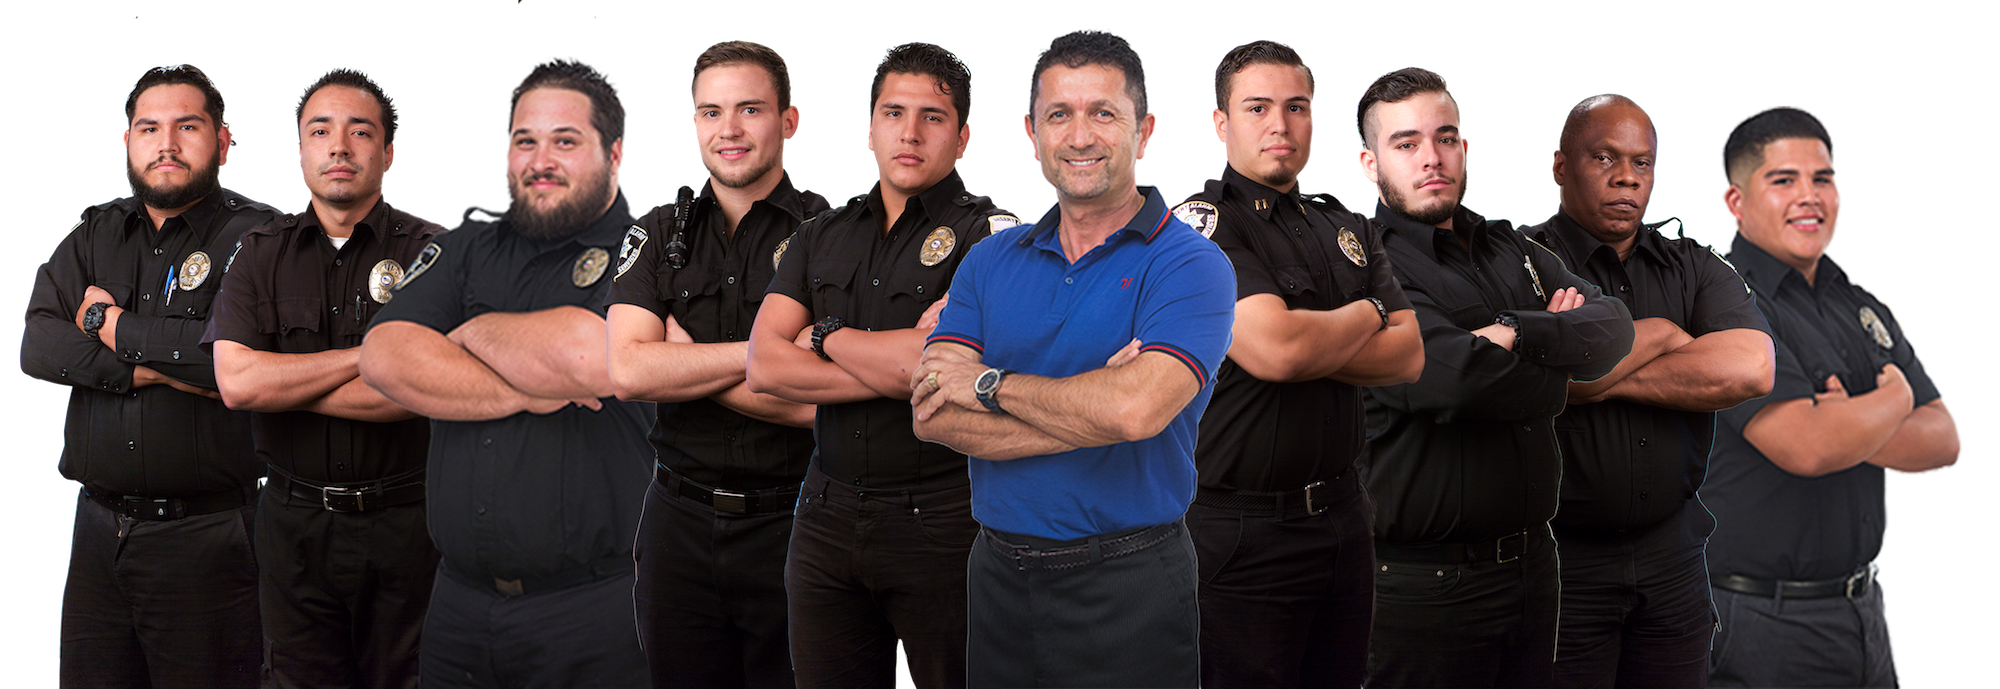 Secure your home today with Patrol Services